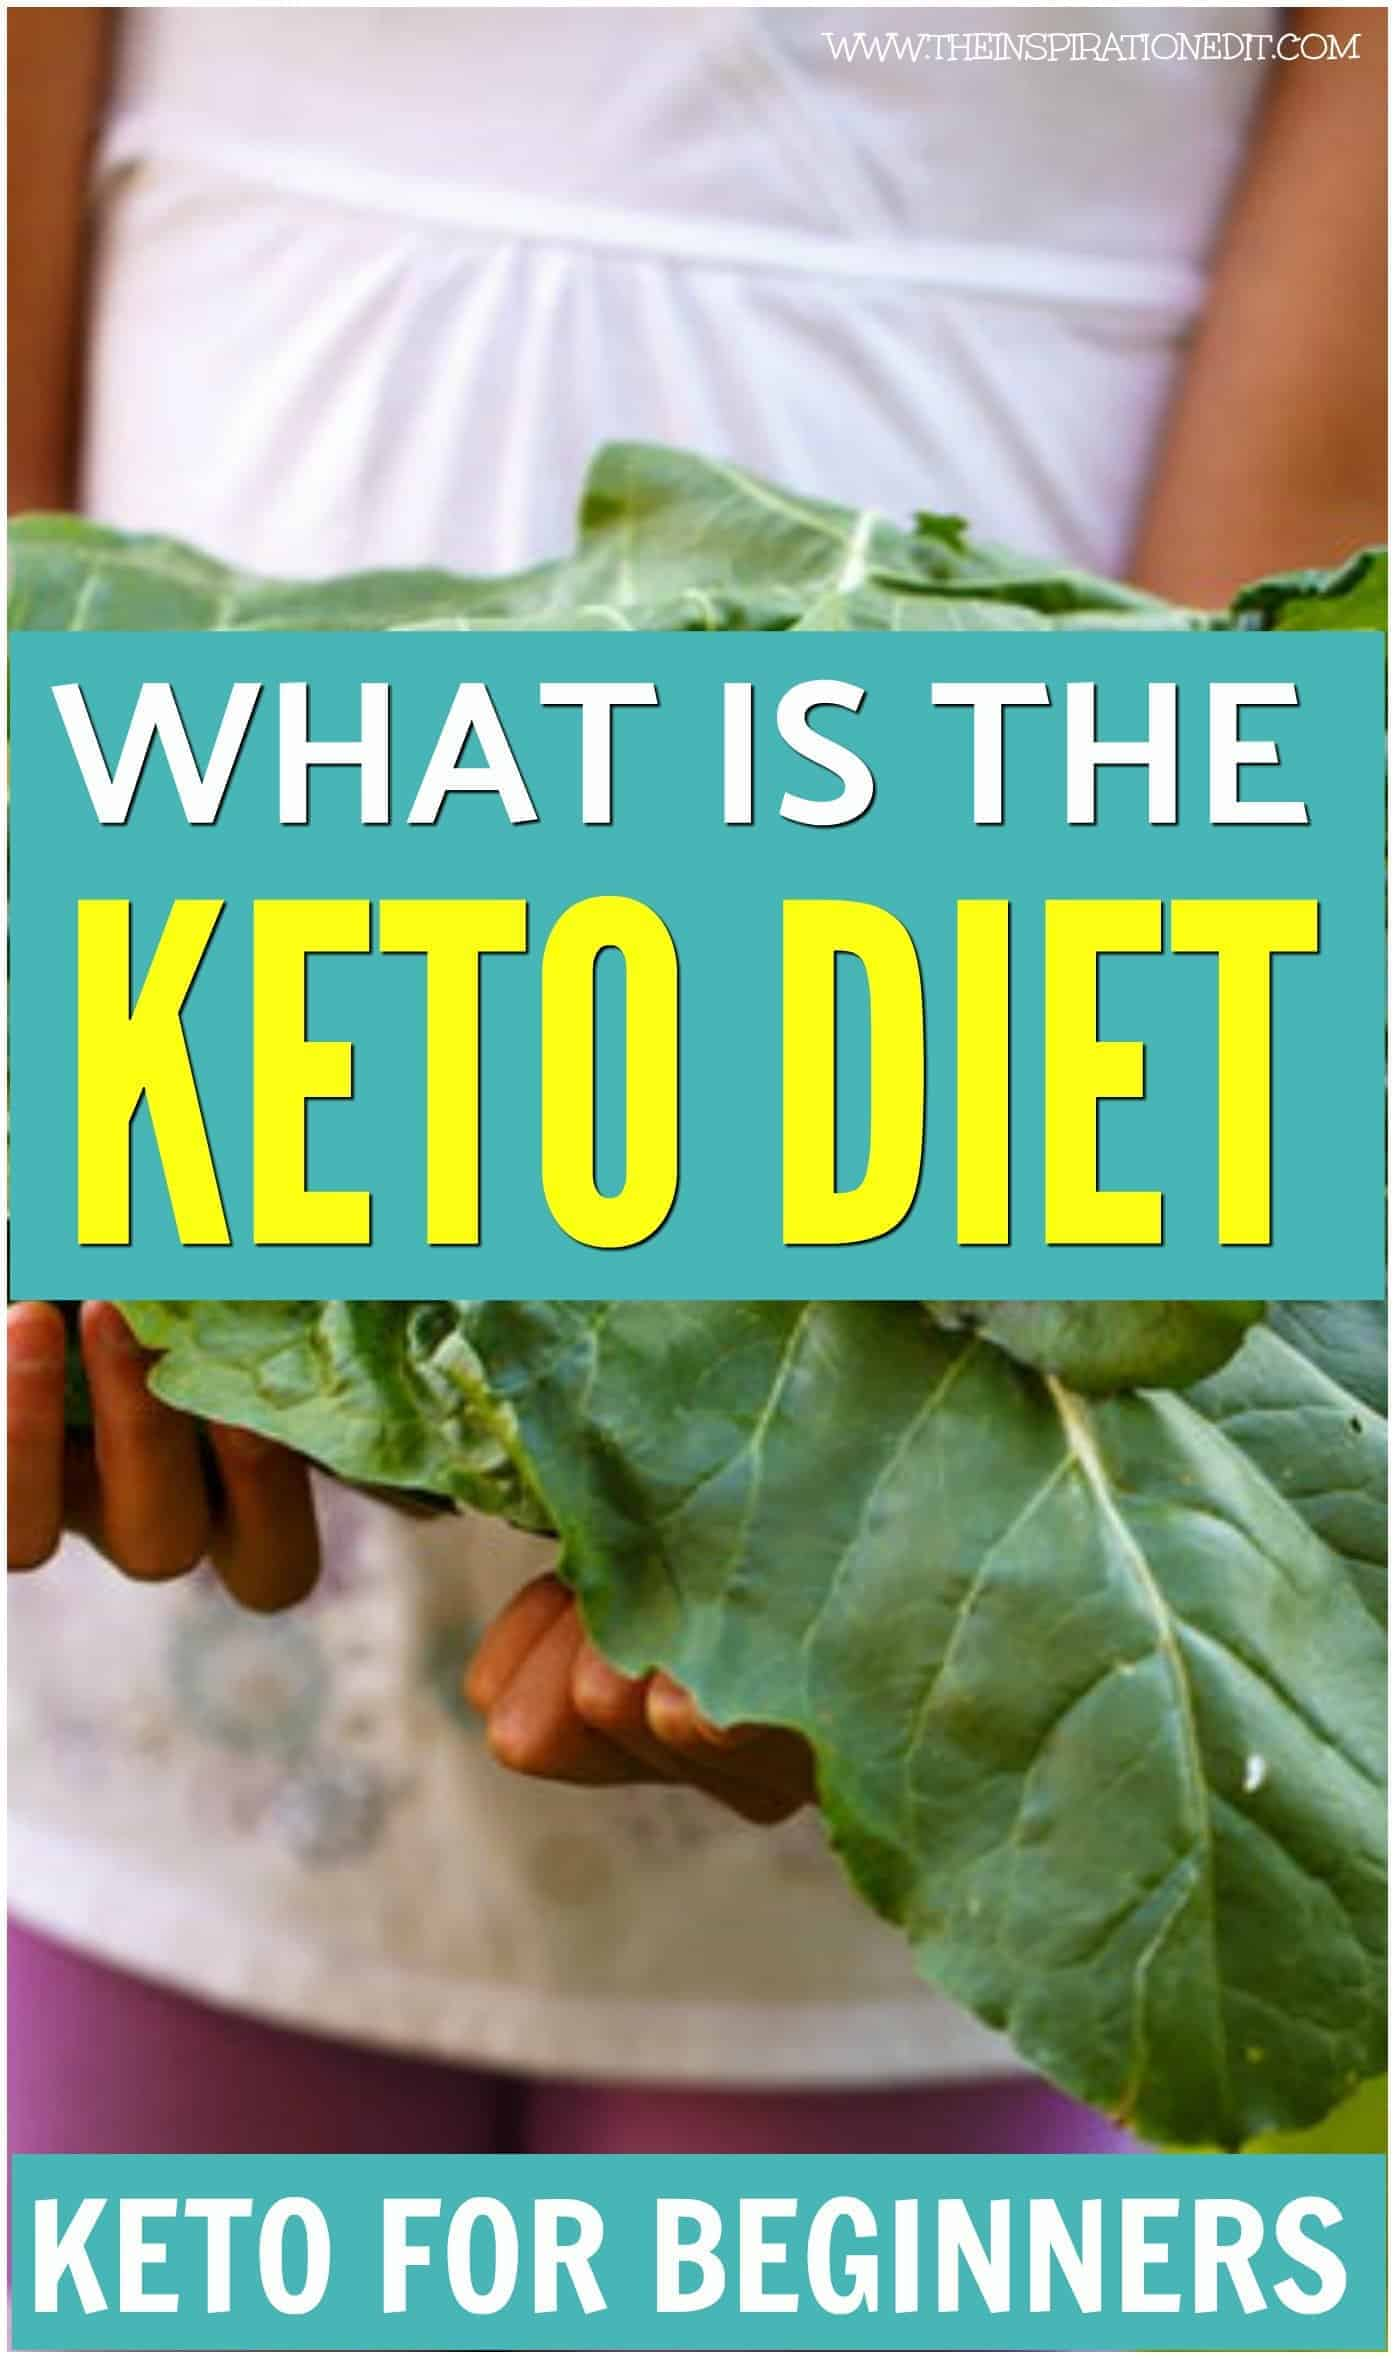 the keto diet and differences from other weight loss plans